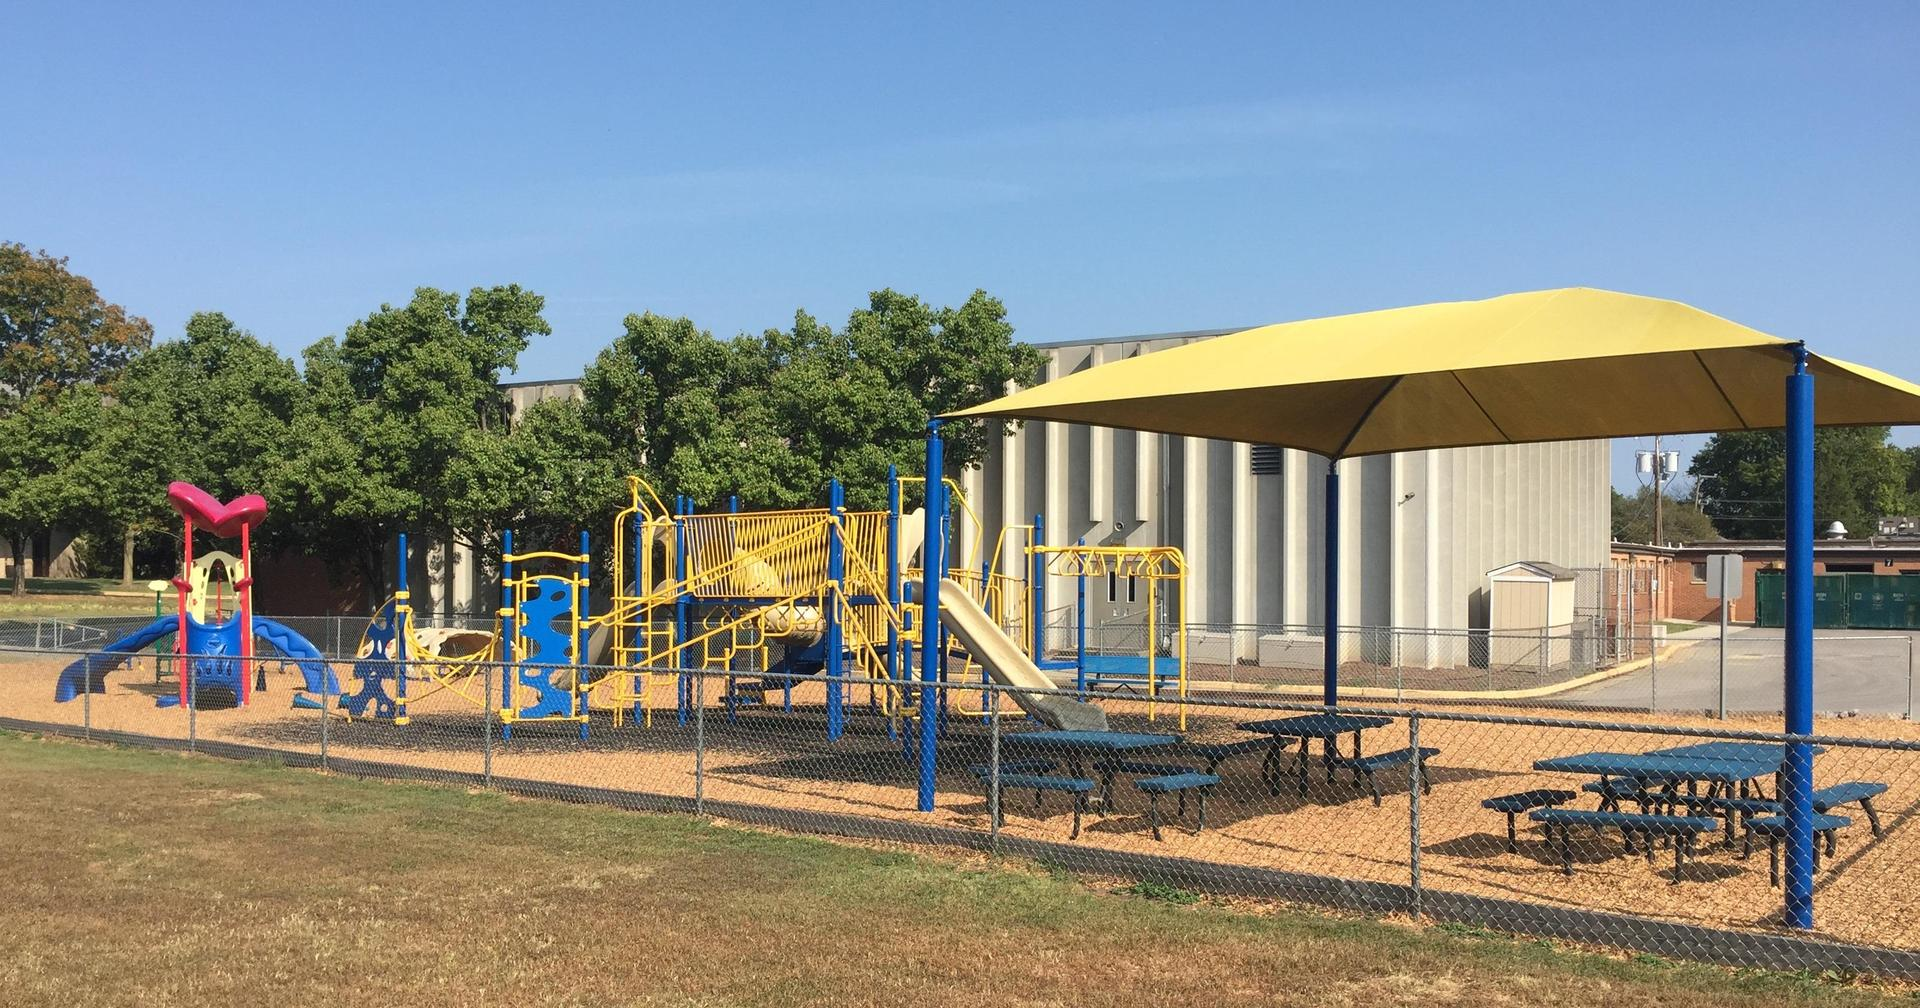 St. Louis School Playground